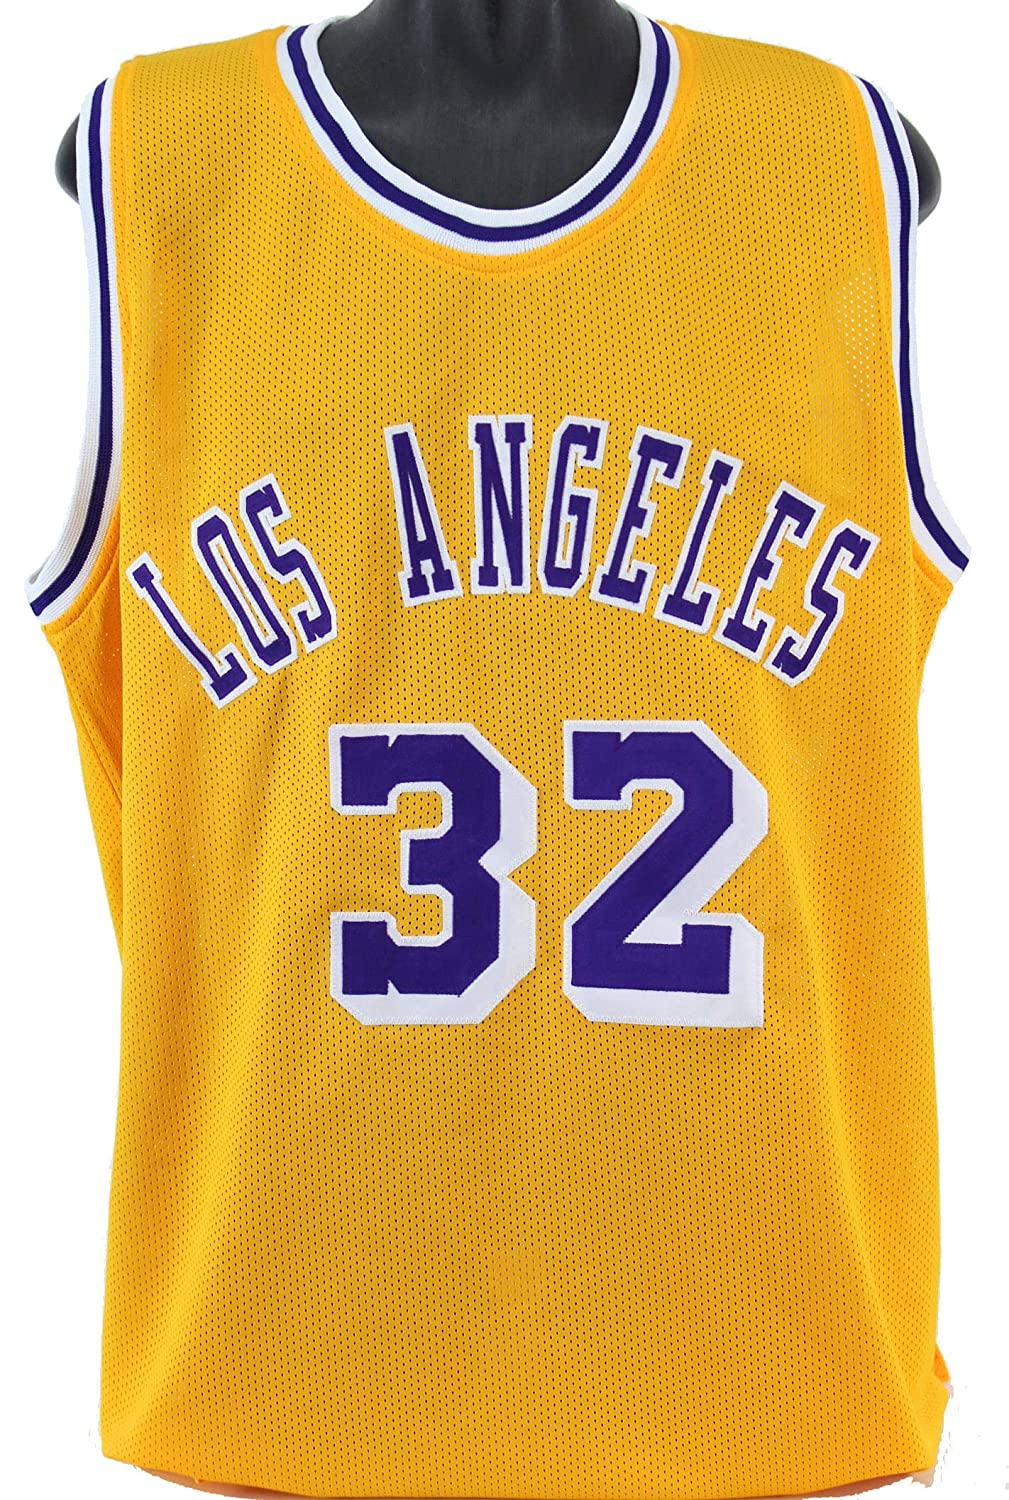 d22194218 Lakers Magic Johnson Authentic Signed Yellow Jersey Autographed BAS  Witnessed 1 at Amazon s Sports Collectibles Store